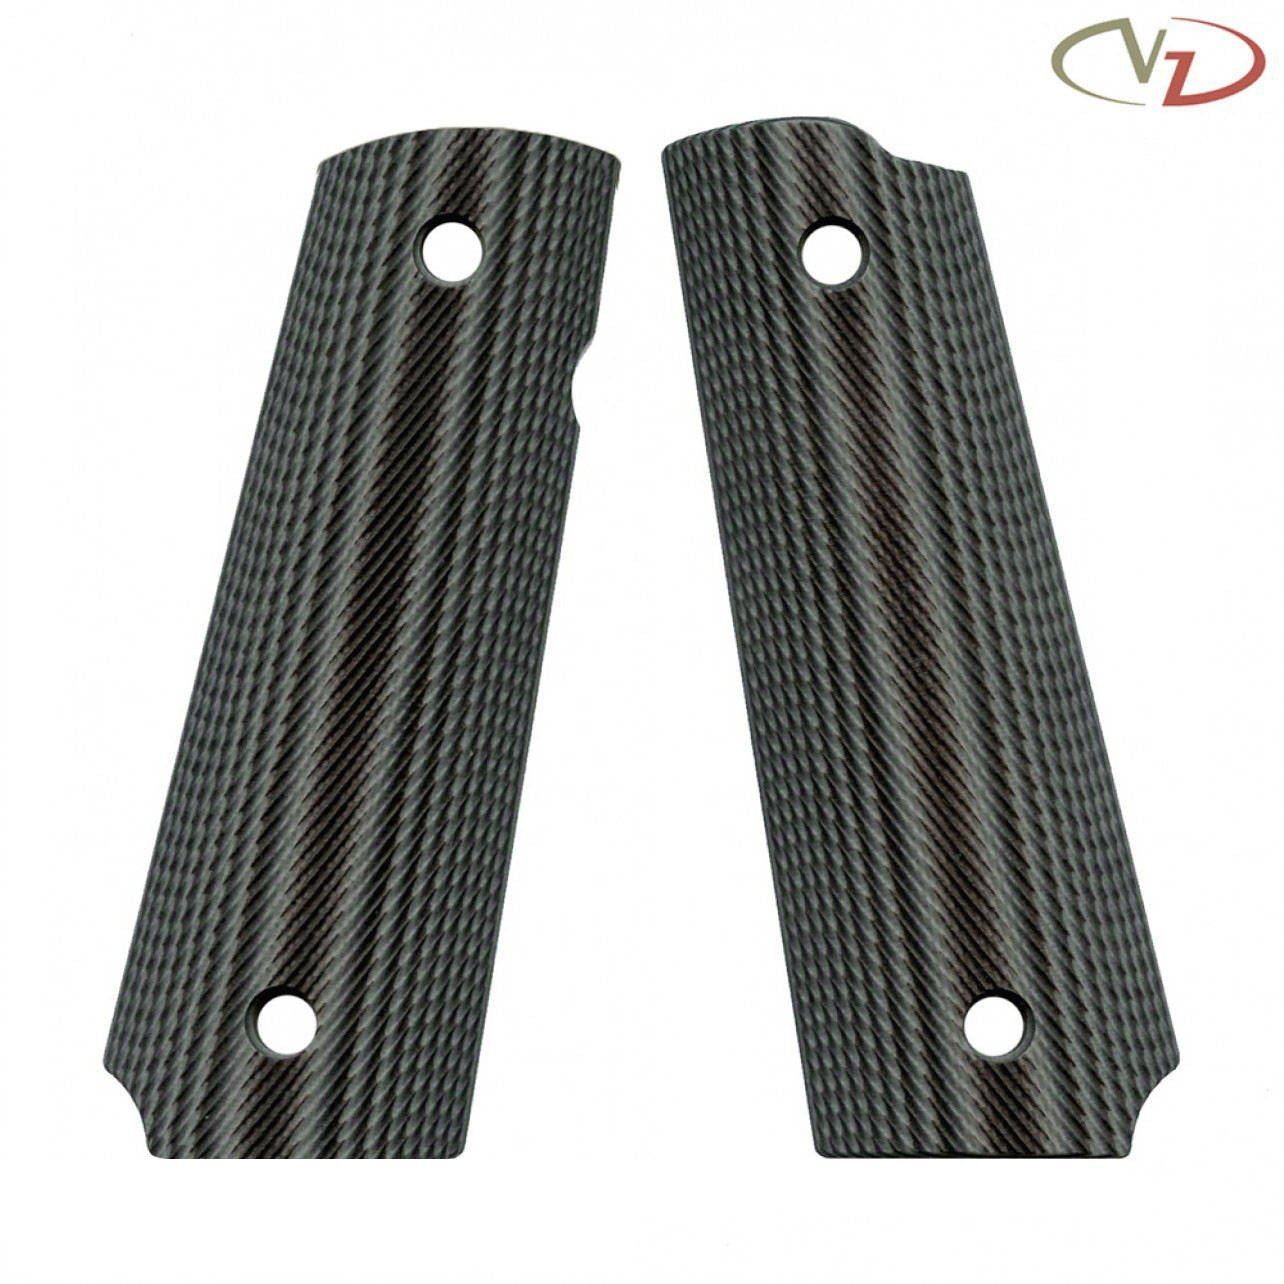 1911 Grip Template Vz Grips